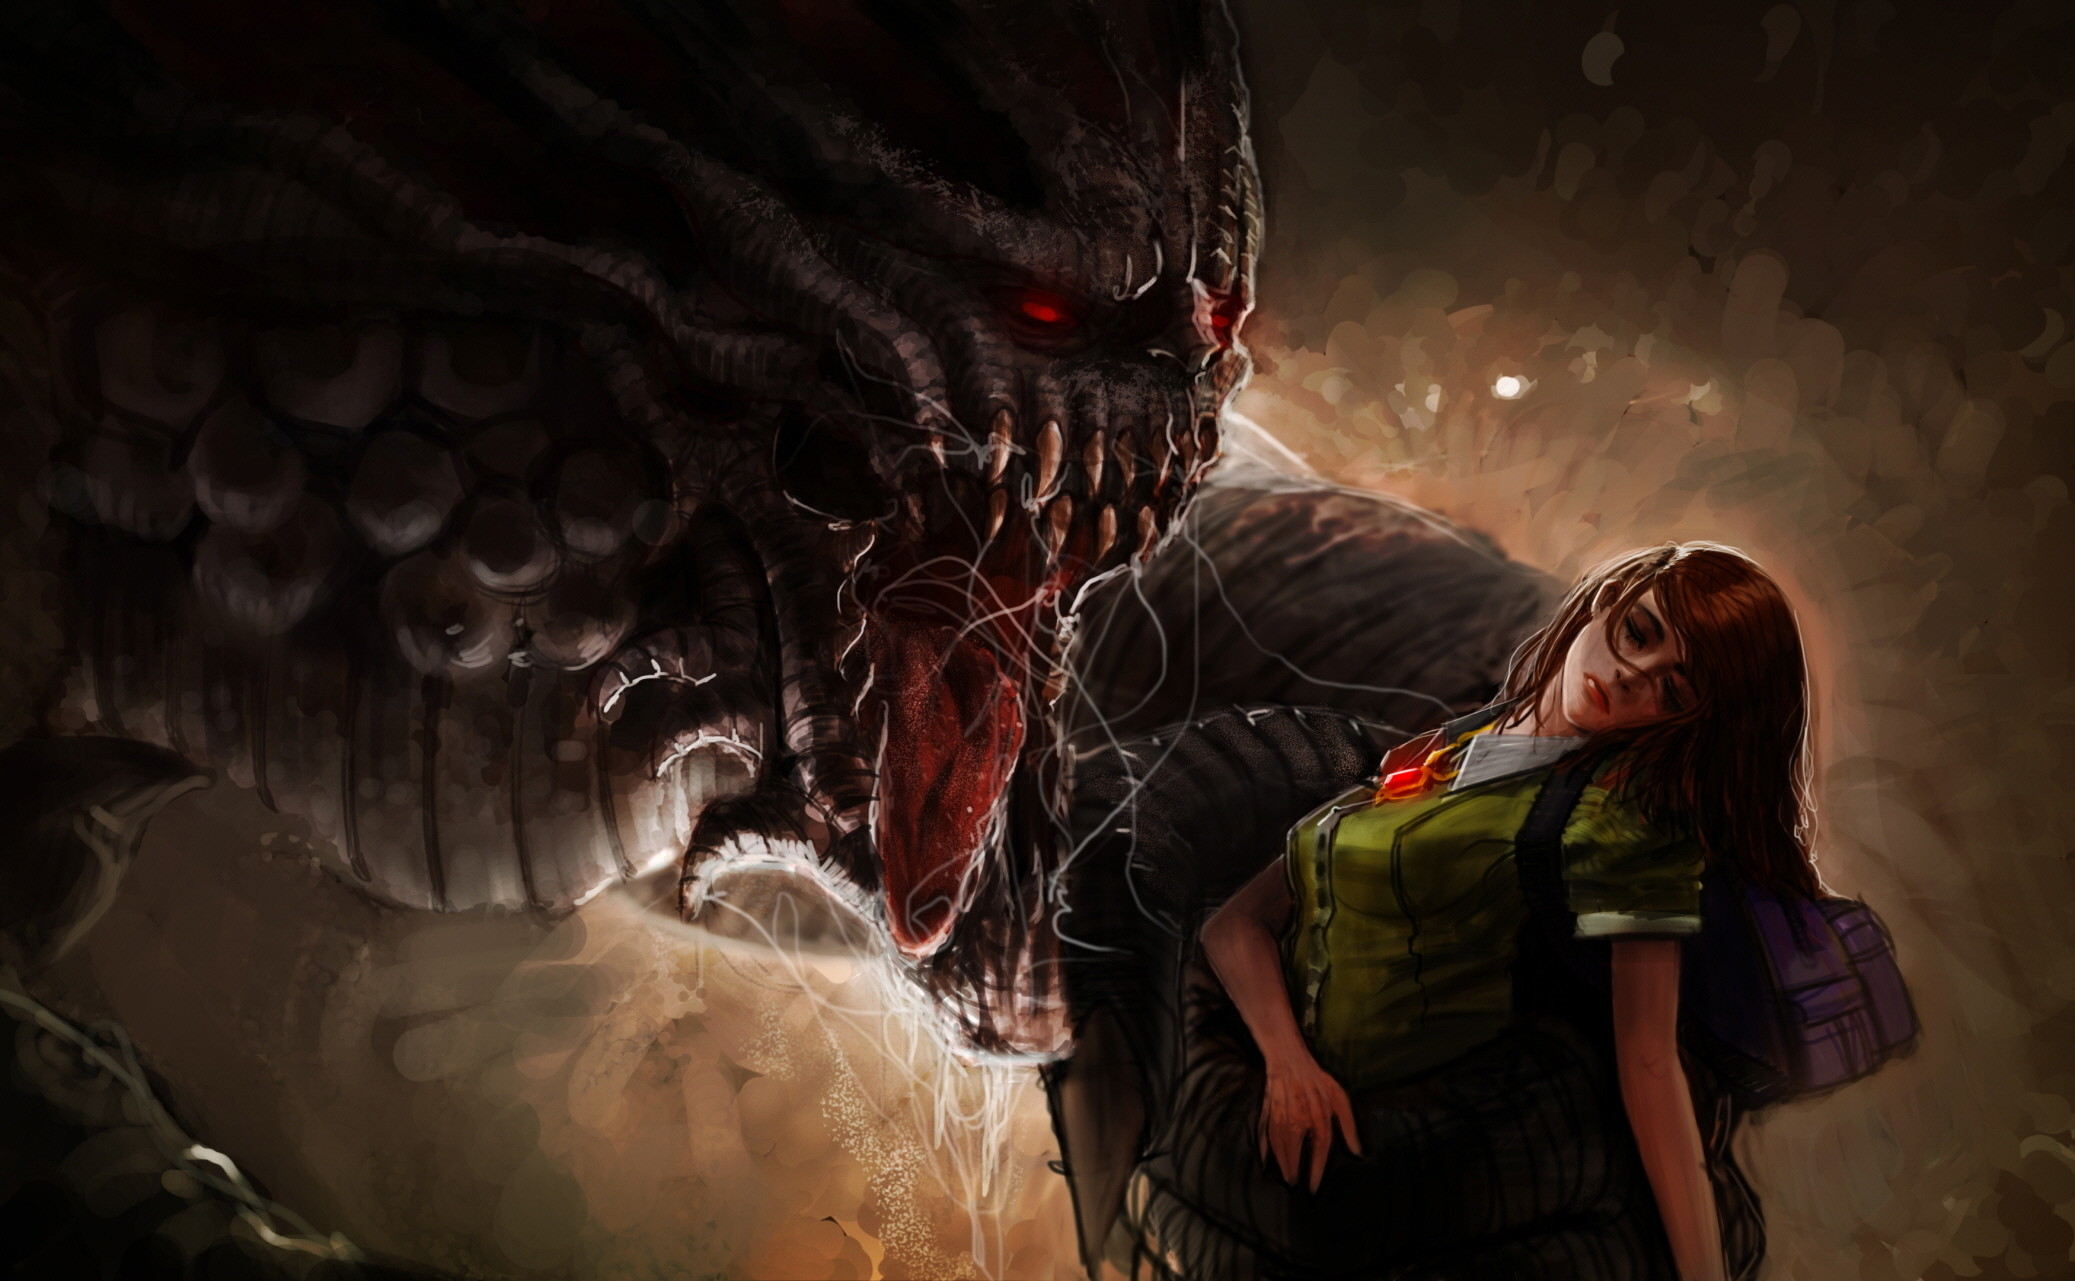 Scary Monster Wallpapers 70 Images